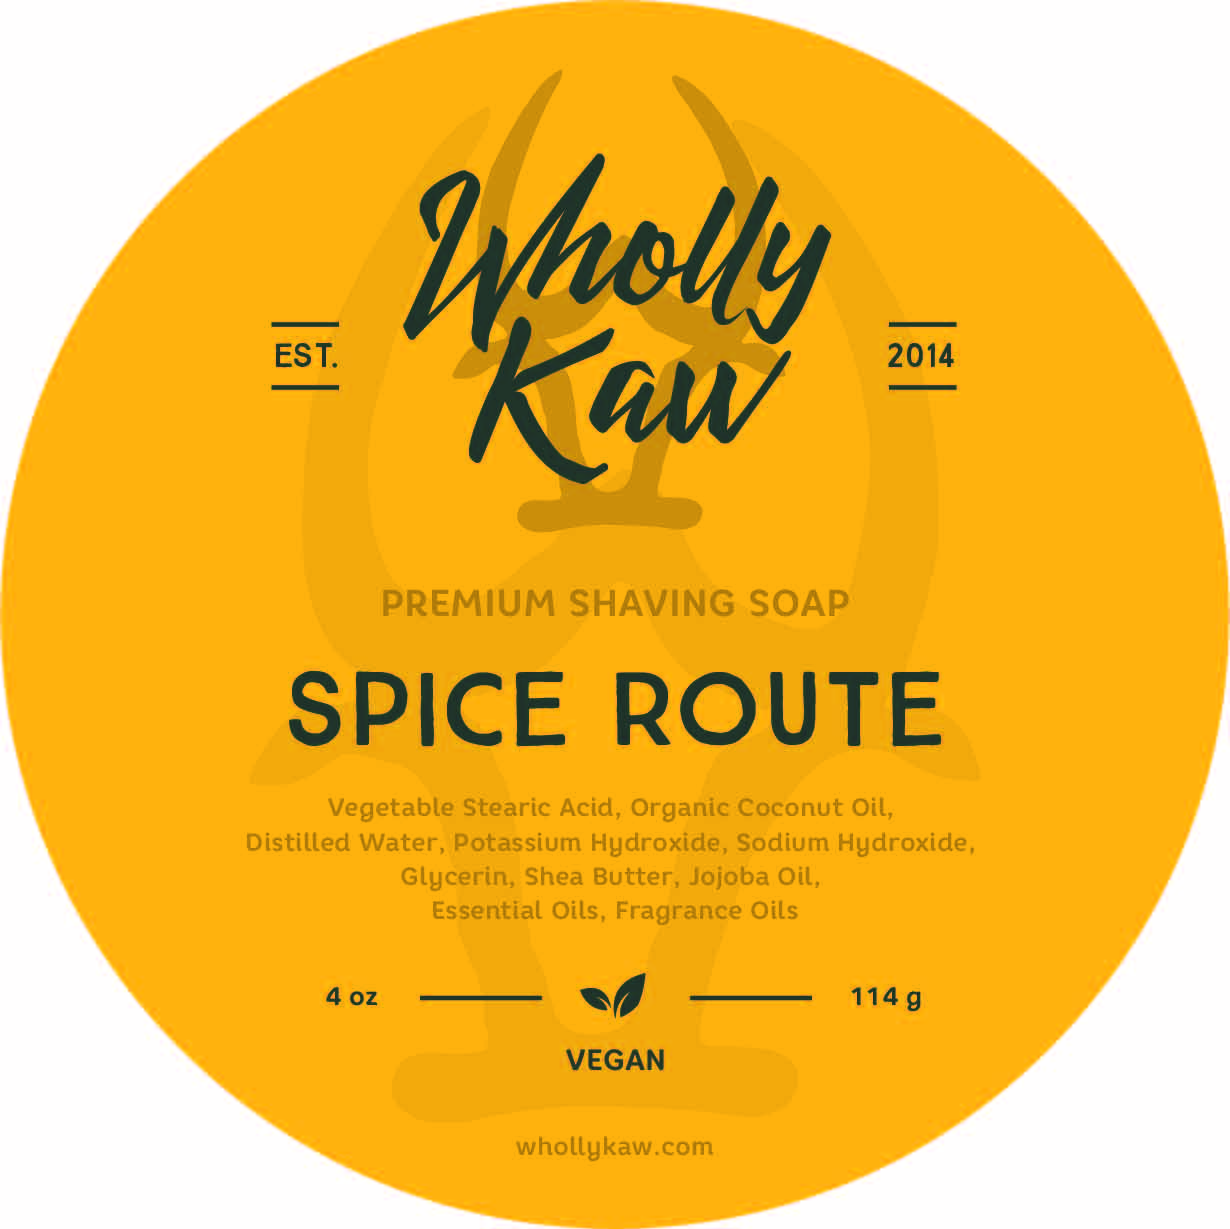 Wholly Kaw - Spice Route - Soap (Vegan) image